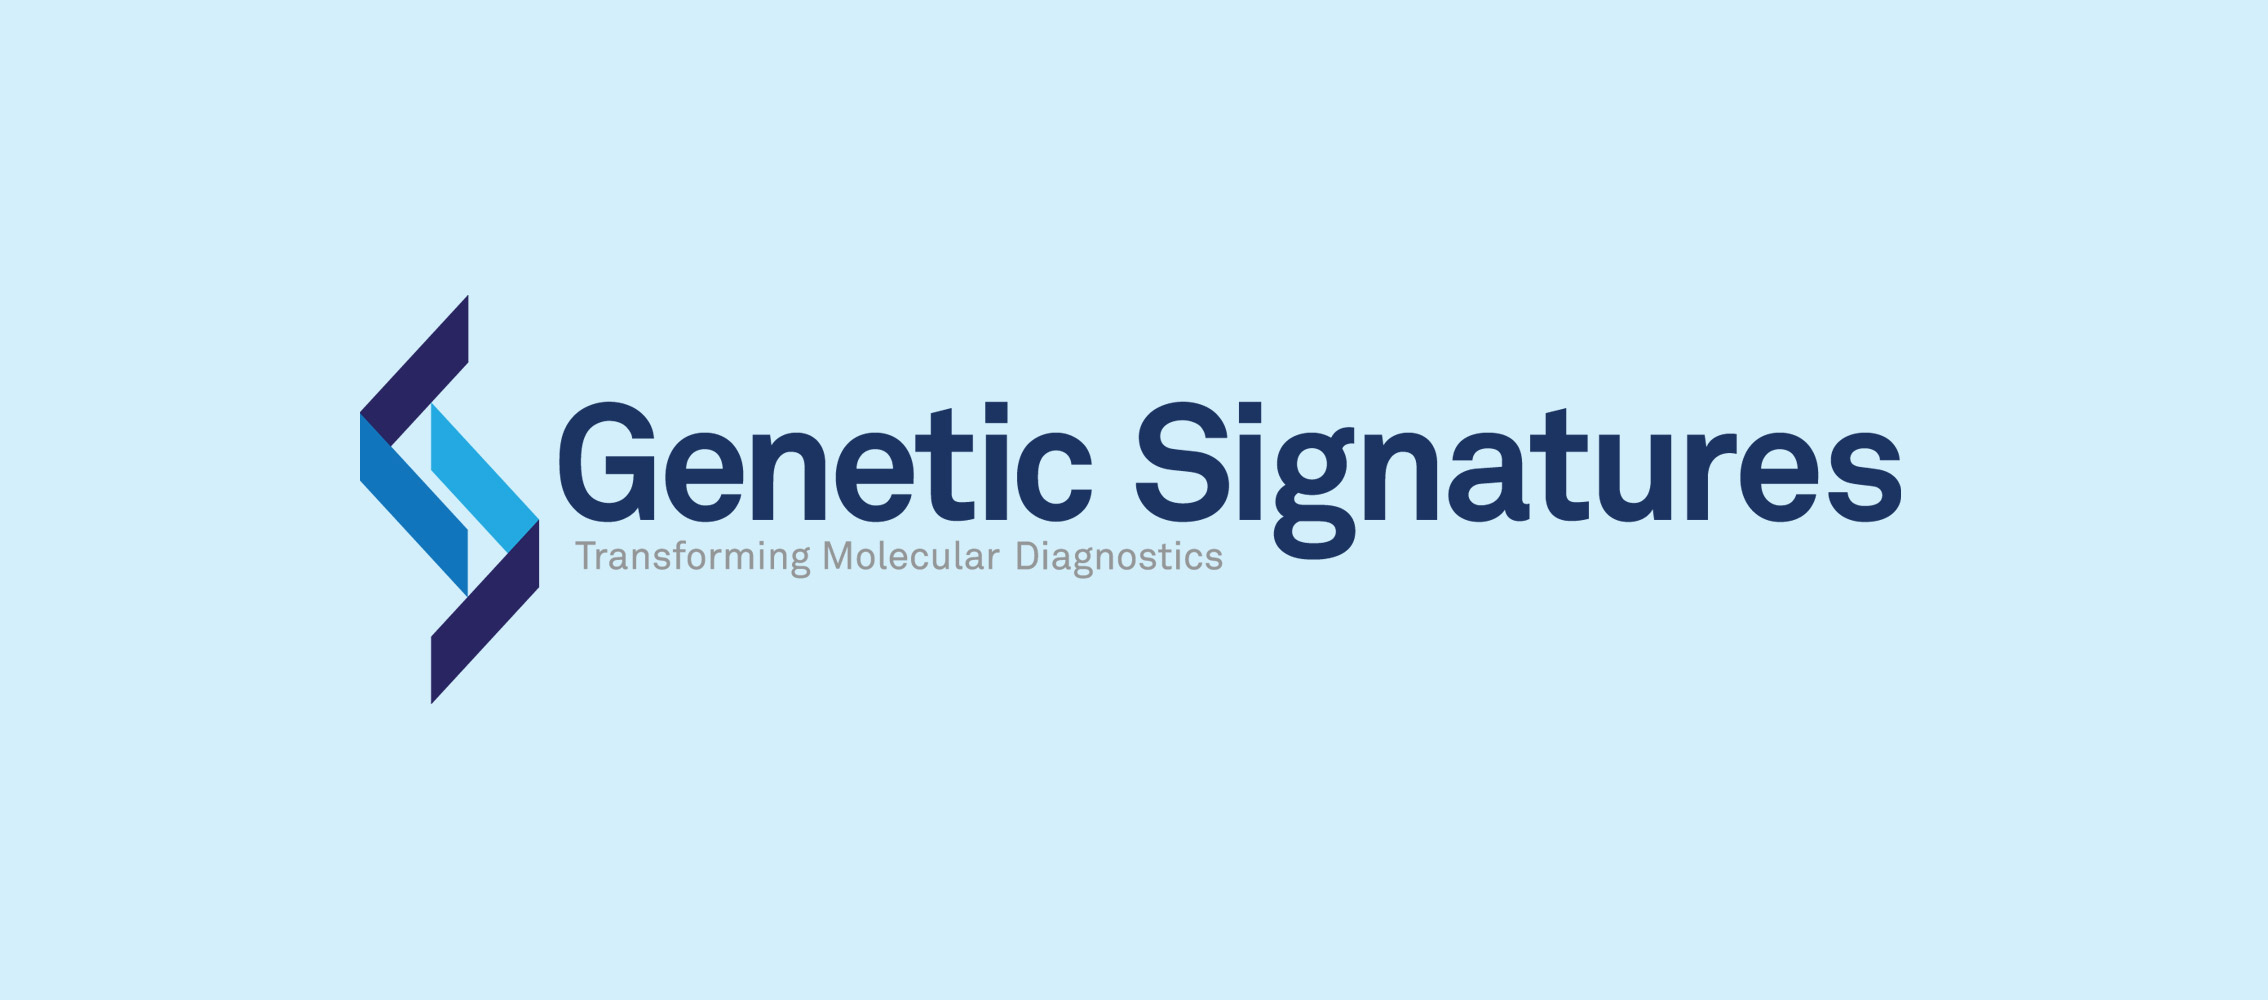 Genetic-Signatures-Logo-Design